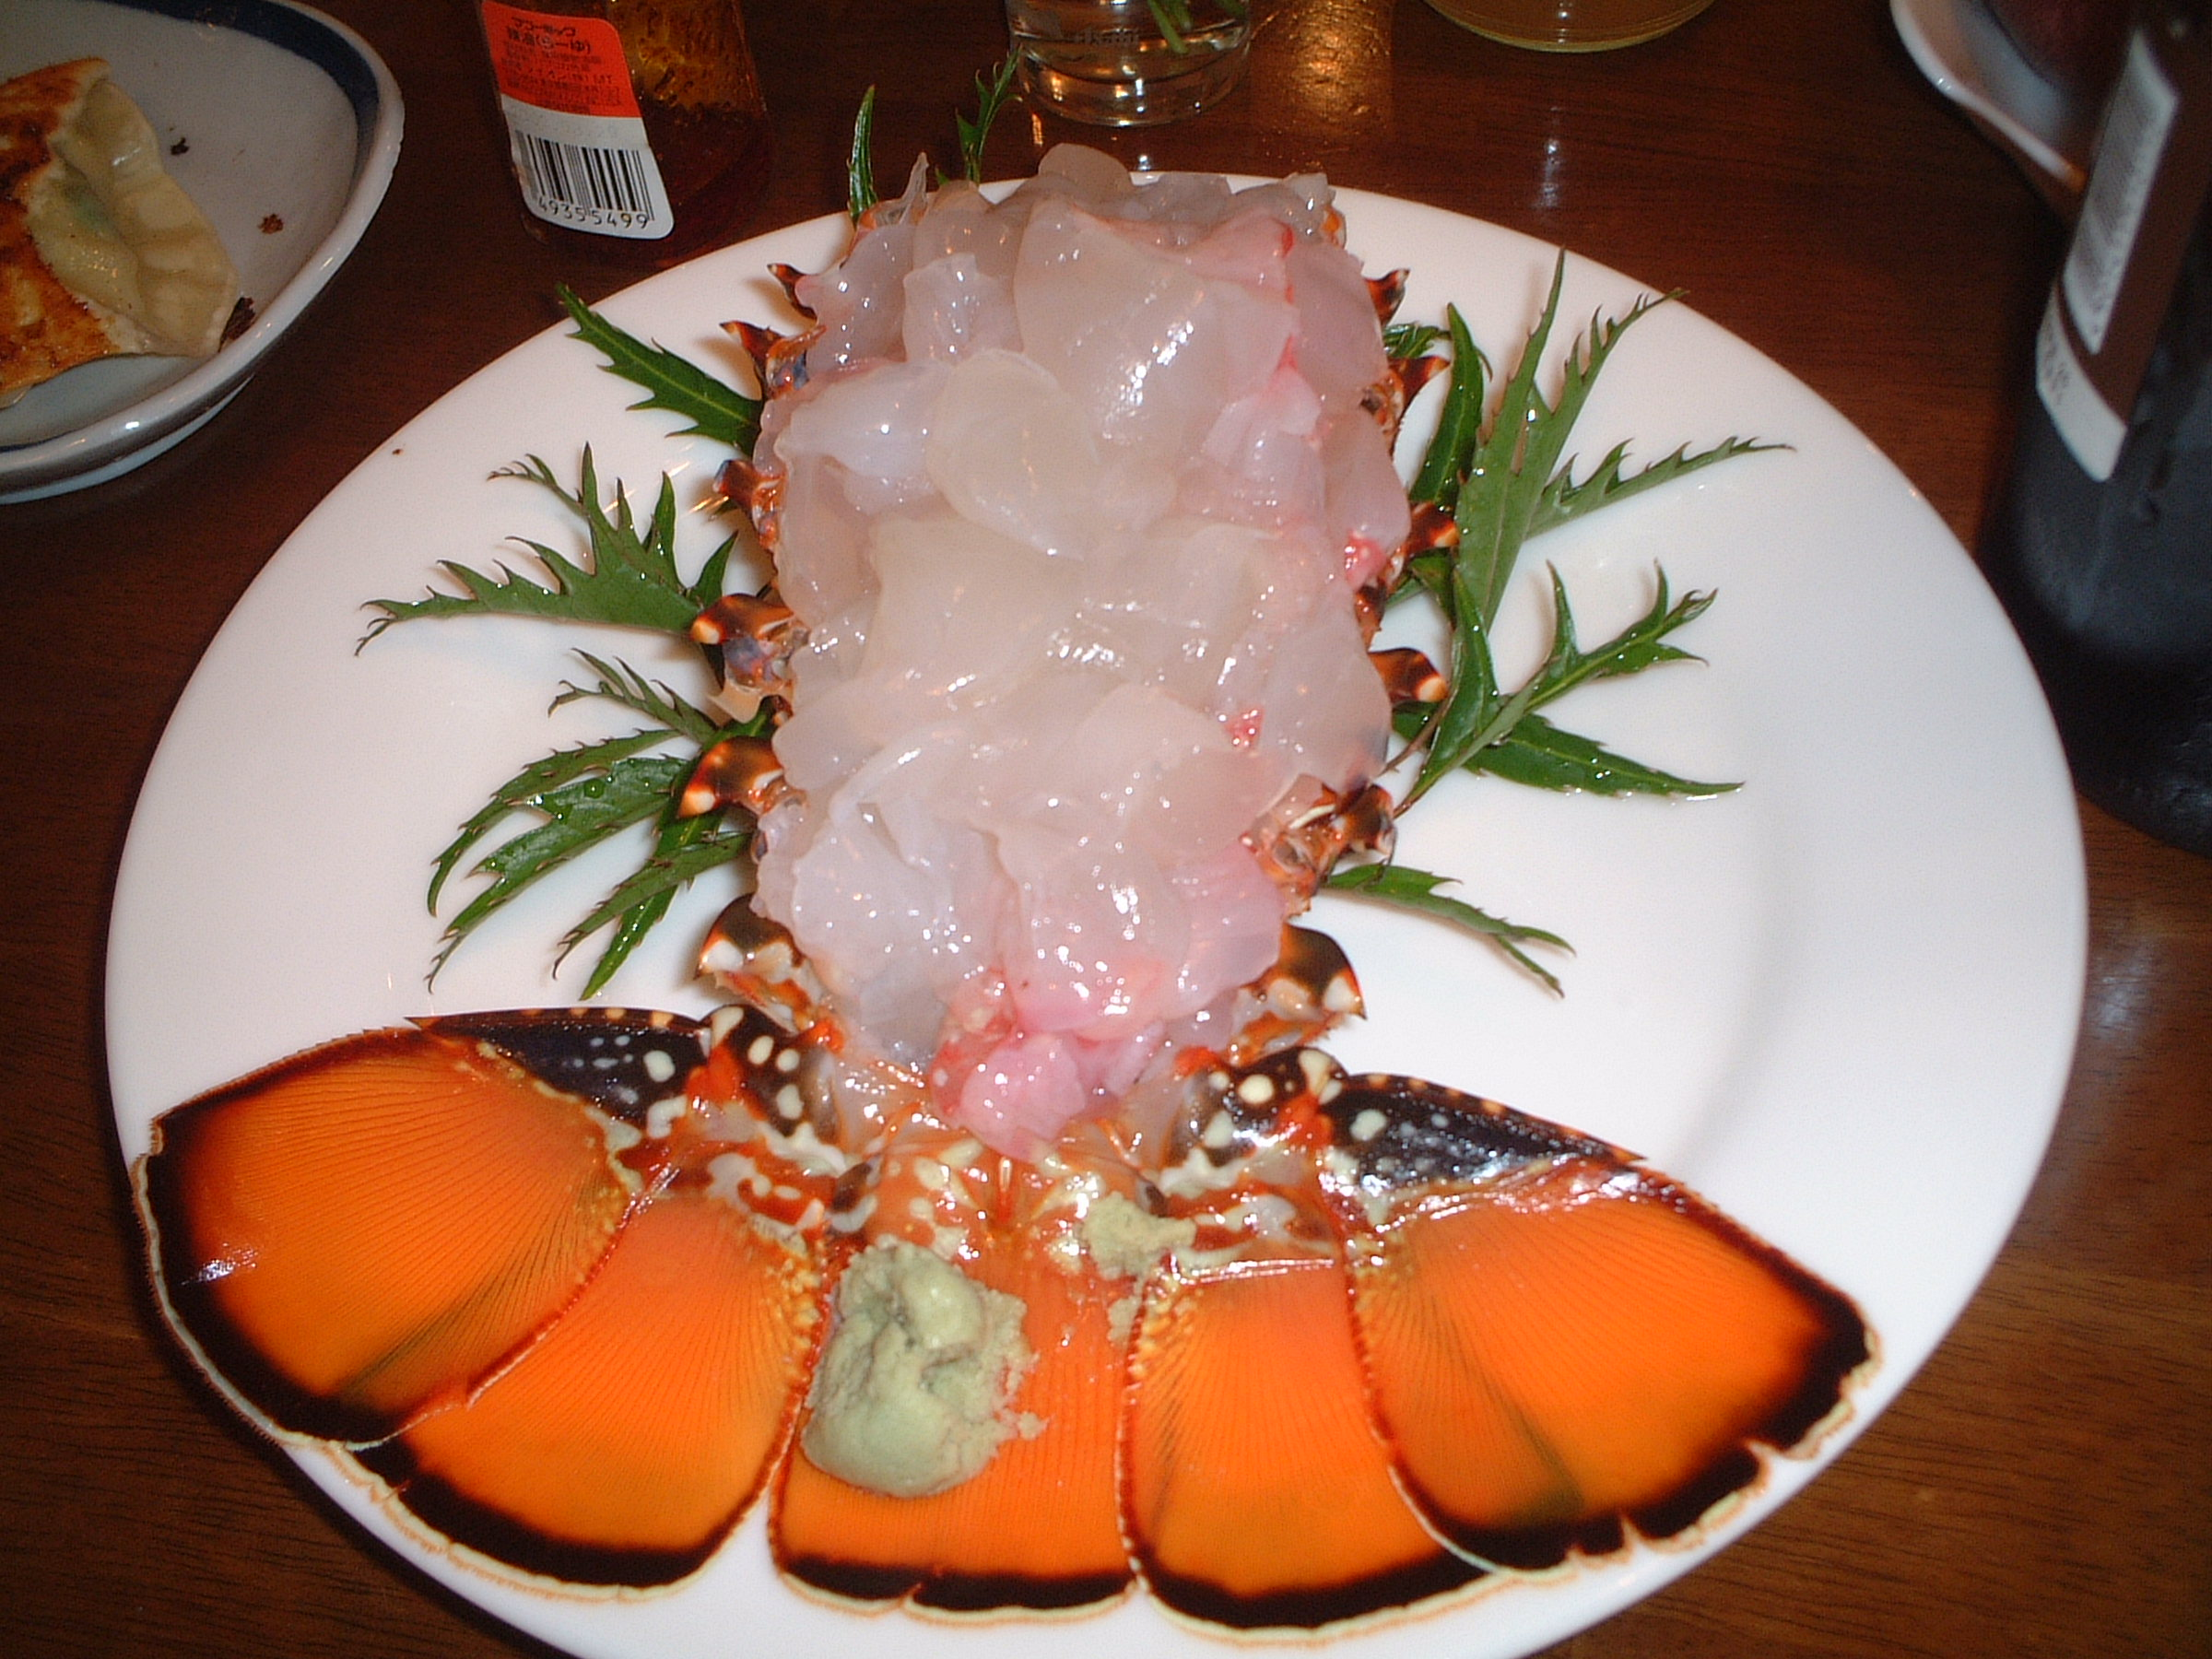 Sashimi lobster served at Hahajima minshiku